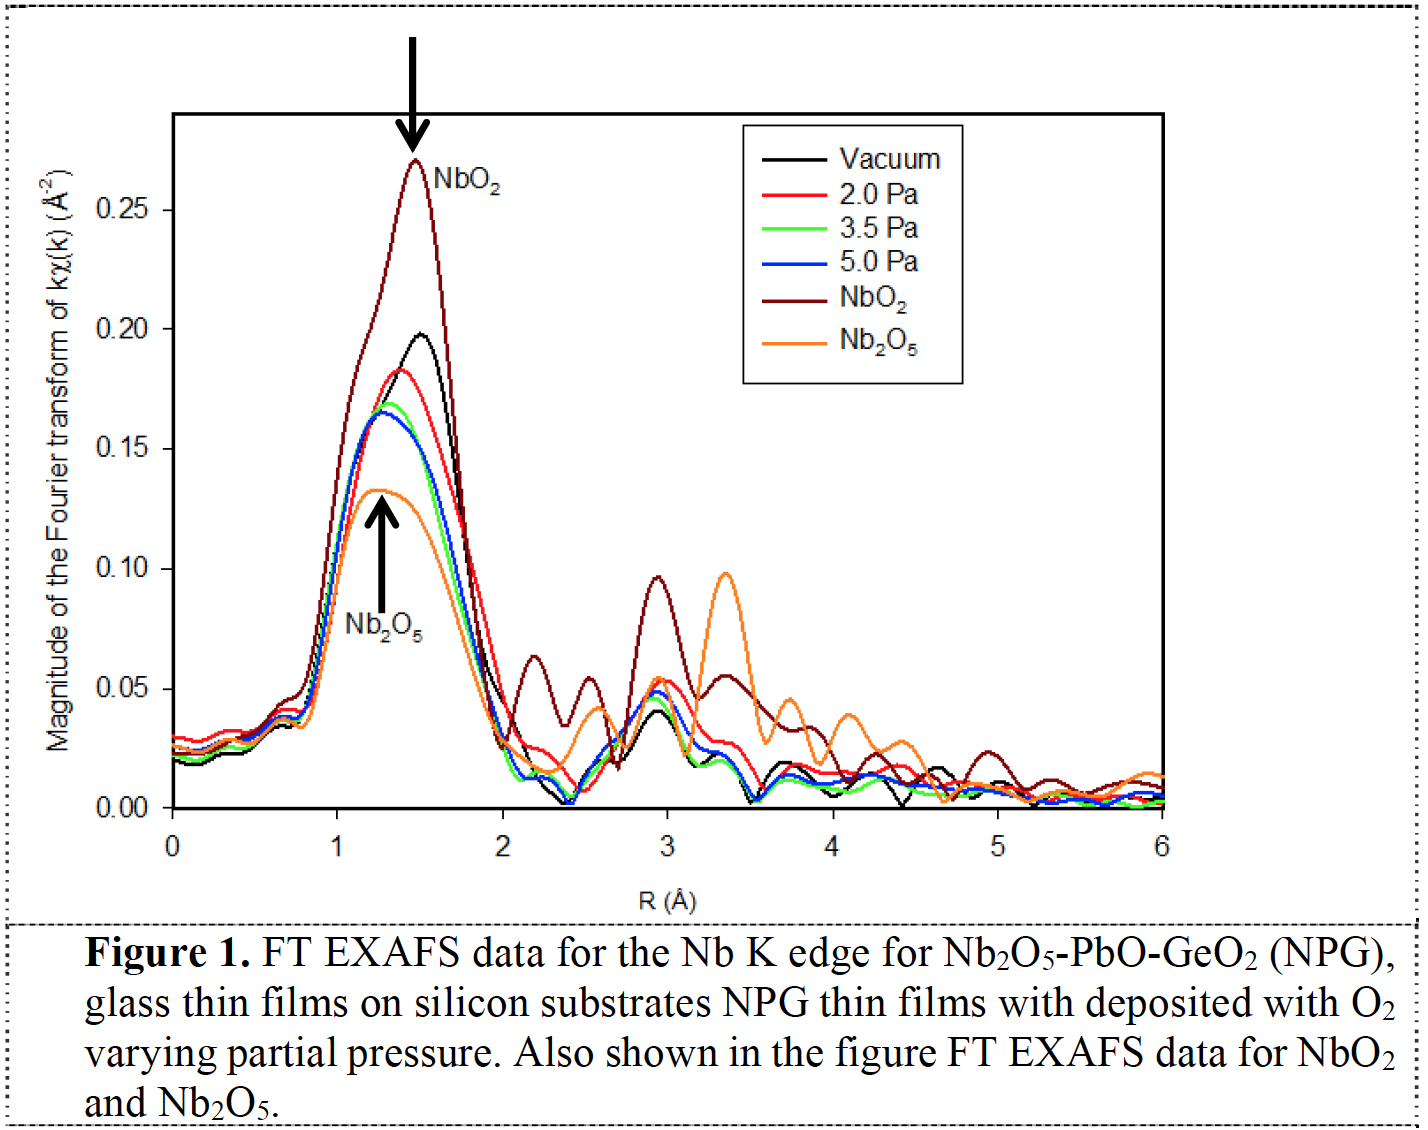 Subtle local structural variations in oxygen deficient niobium germanate thin film glasses as revealed by x-ray absorption spectroscopy